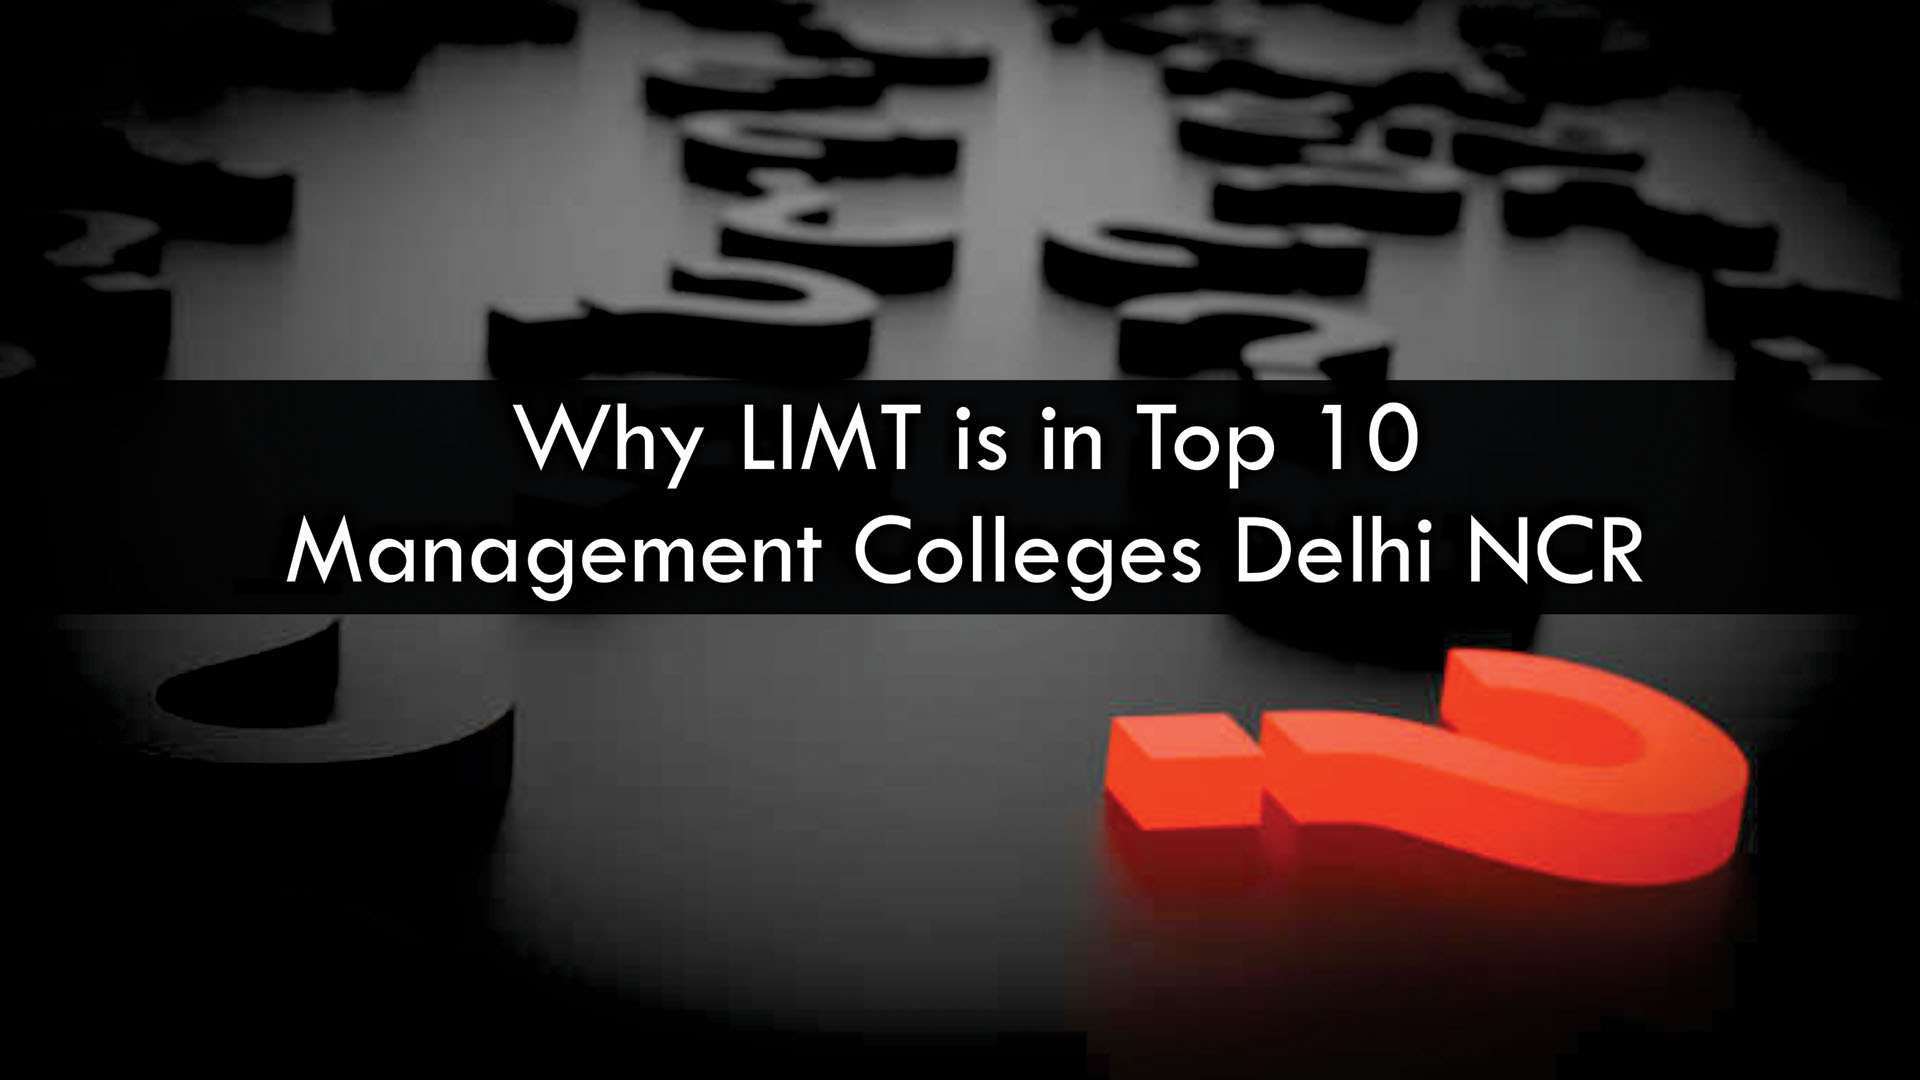 why limt is in top 10 management colleges delhi ncr